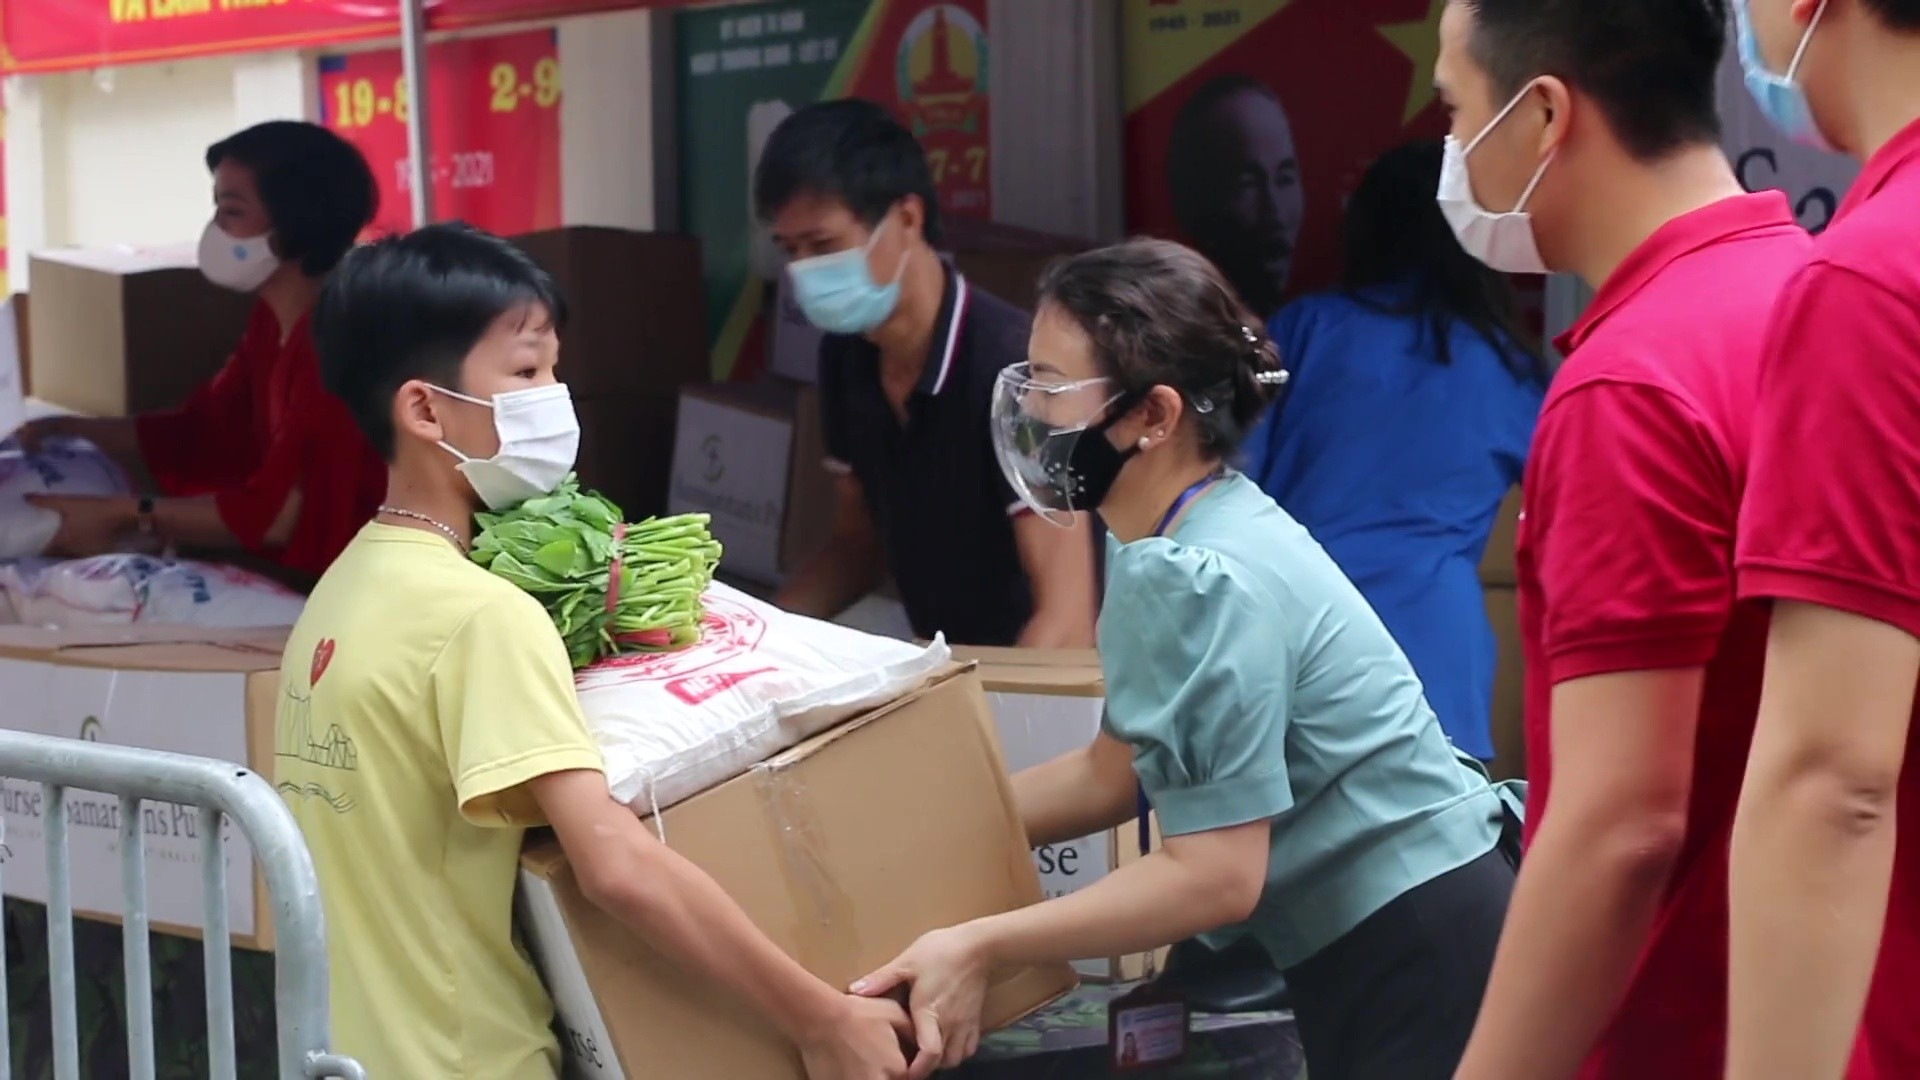 Samaritan's Purse distributed food relief packages and supplies to families in Vietnam who are struggling during the pandemic.